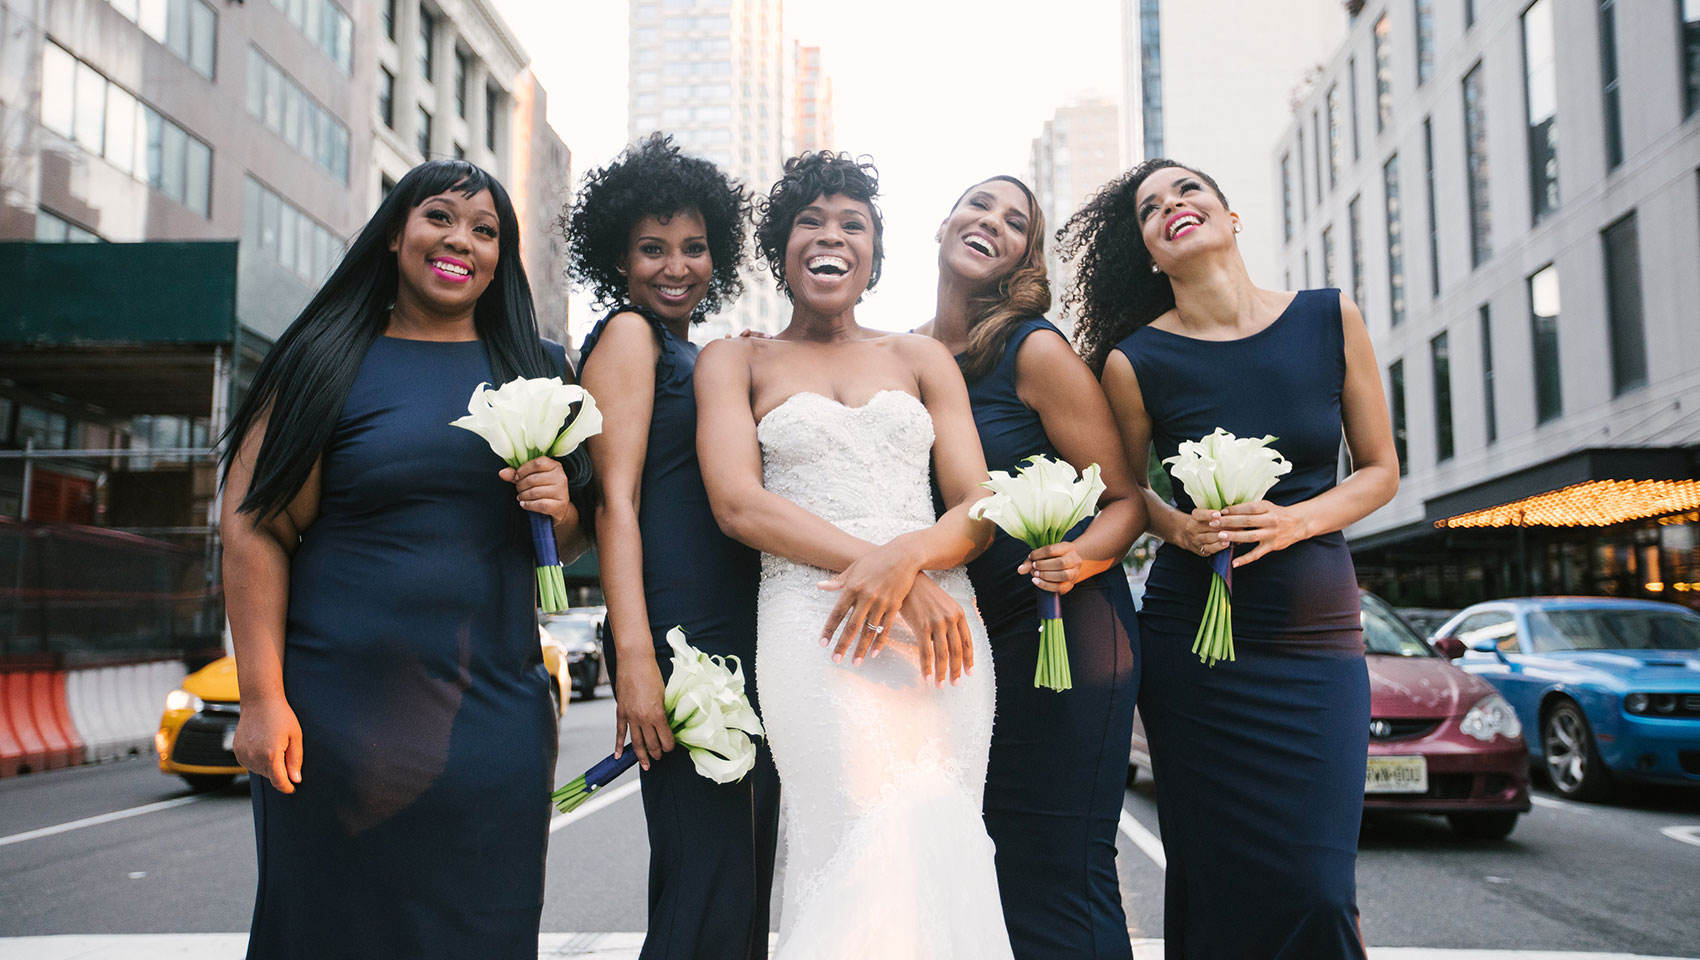 Ahkilah in her wedding dress with bridesmaids holding flowers on a street crosswalk